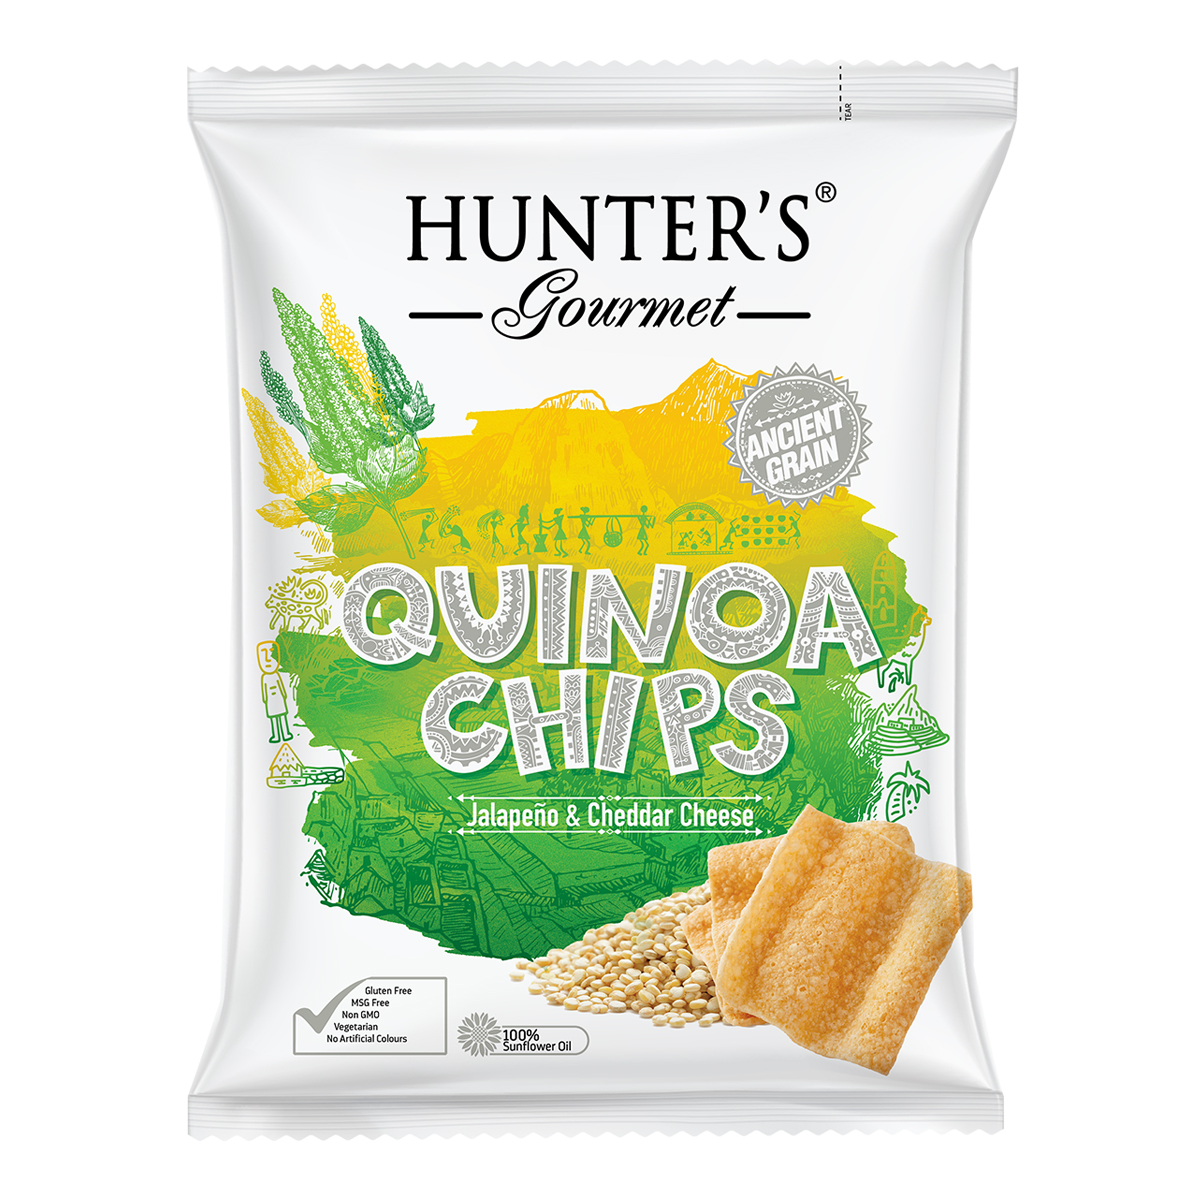 Hunter's Gourmet Quinoa Chips – Sea Salt & Cider Vinegar (75gm)